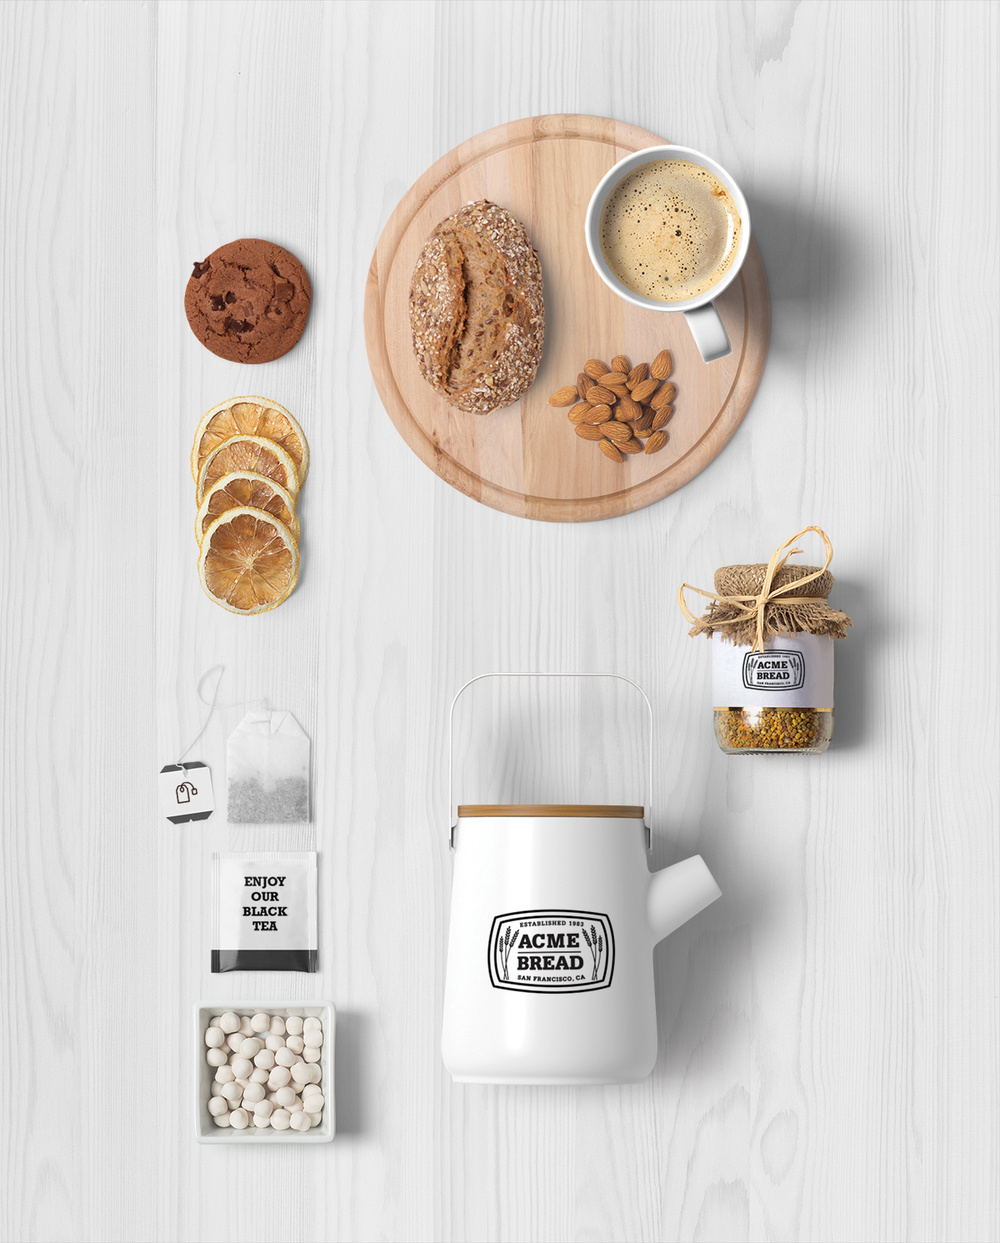 Food-Packaging-&-Branding-MockUps-01.jpg